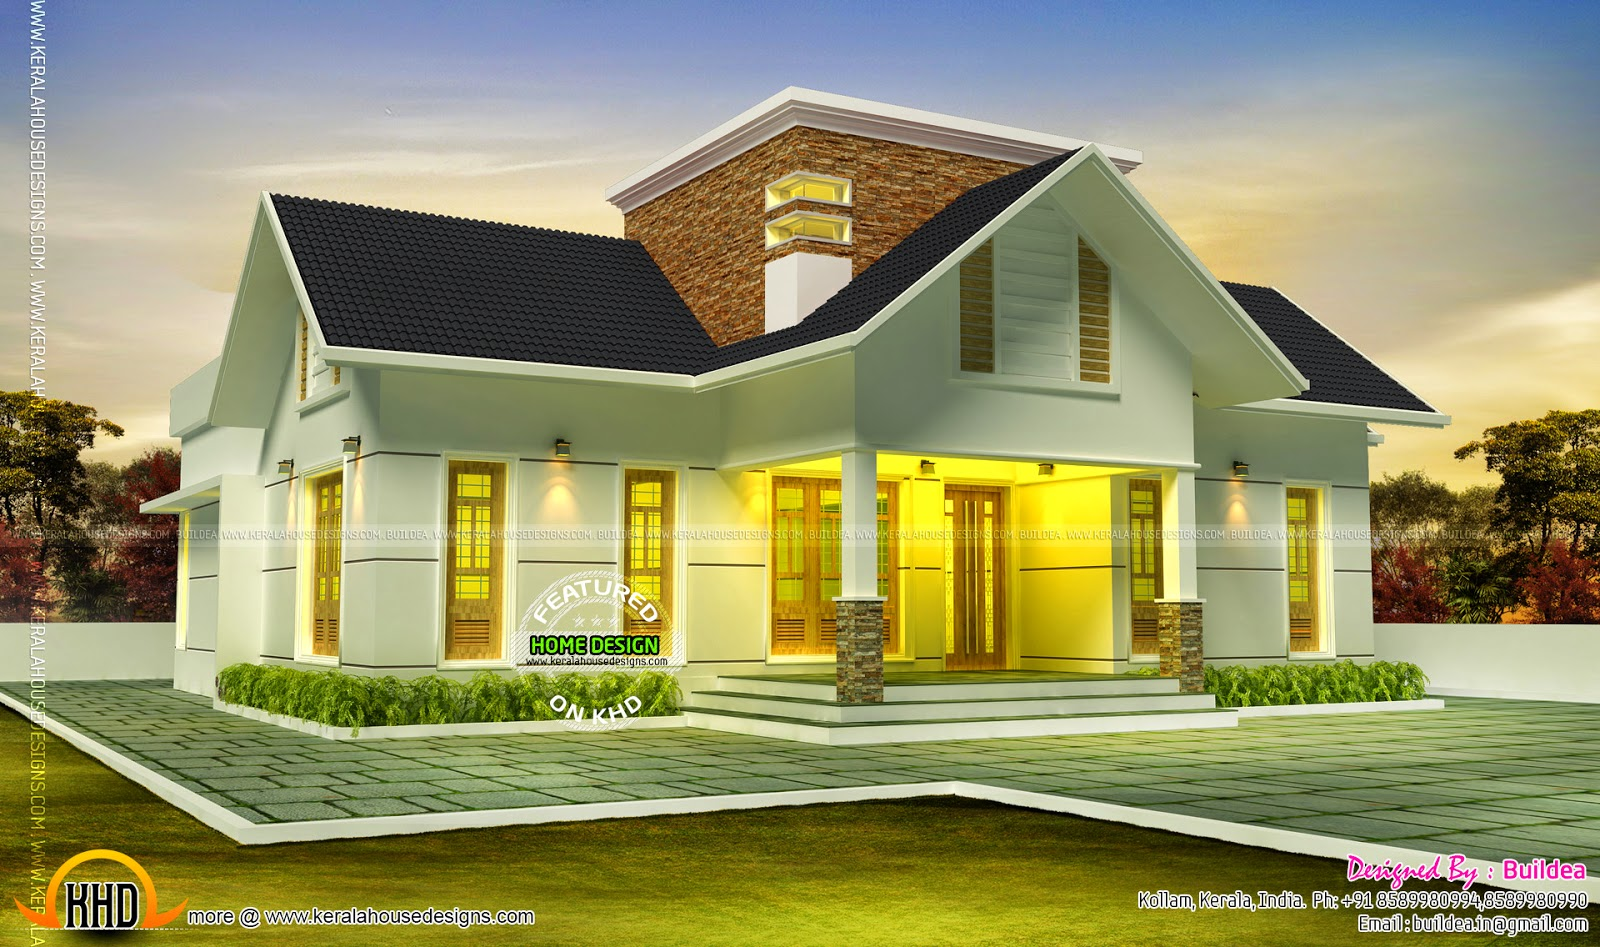 Very beautiful house kerala home design and floor plans for Beautiful home floor plans